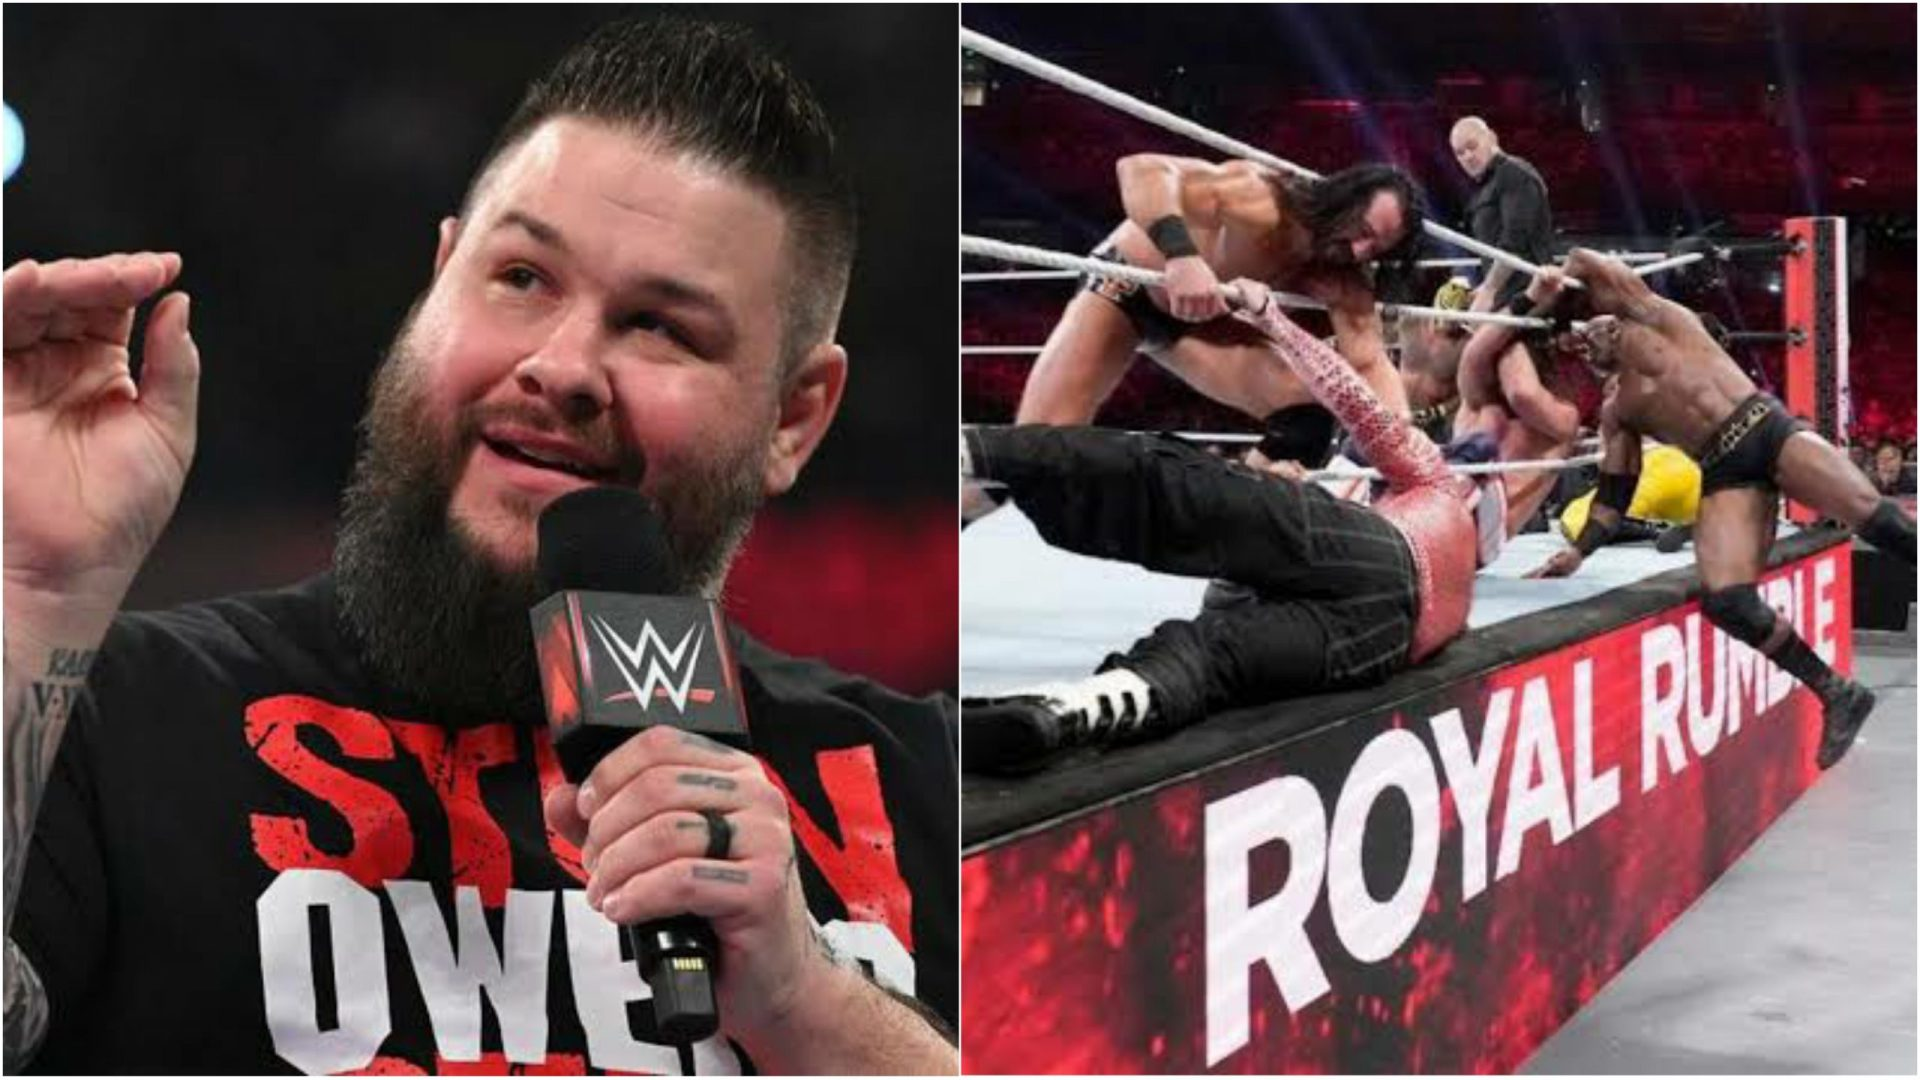 Kevin Owens outlines what would make the Royal Rumble match better - THE SPORTS ROOM